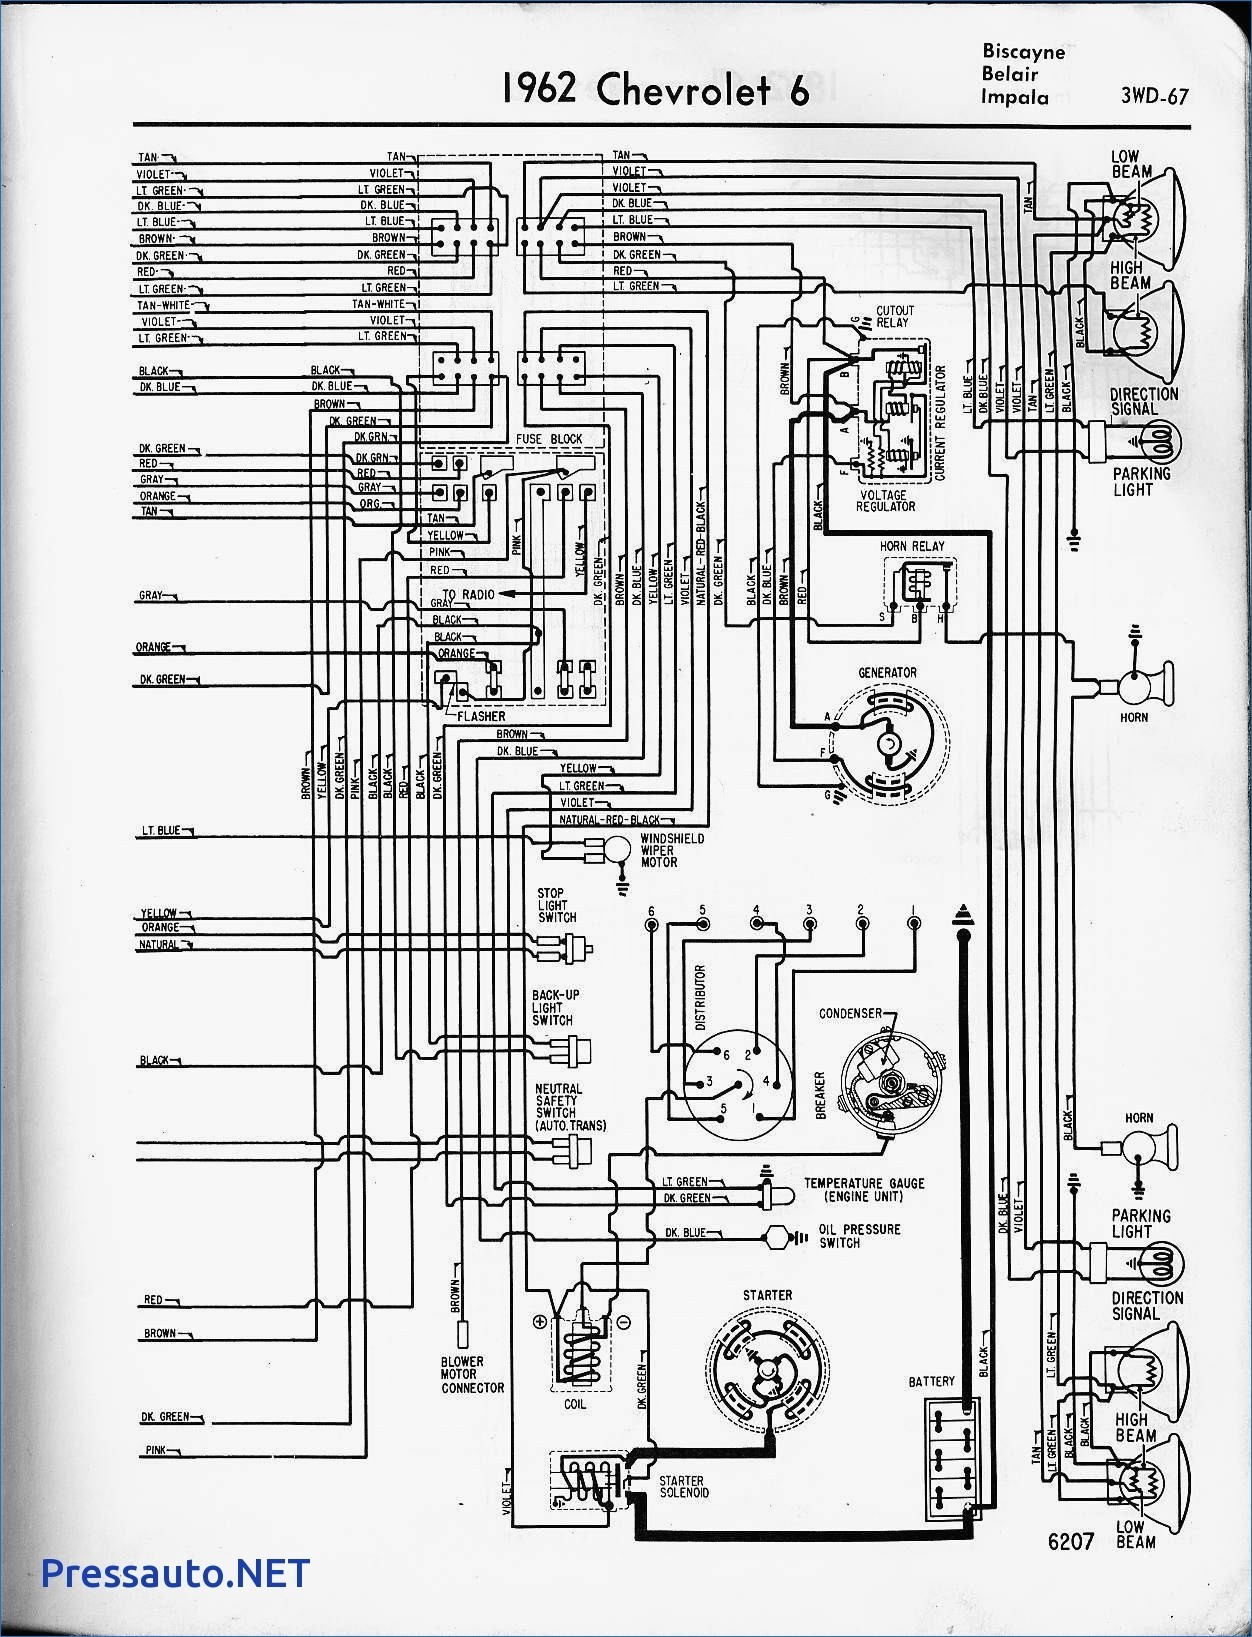 hight resolution of 61 impala wiring diagram wiring diagrams place more diagram like 1961 chevrolet 6 biscayne belair and impala wiring